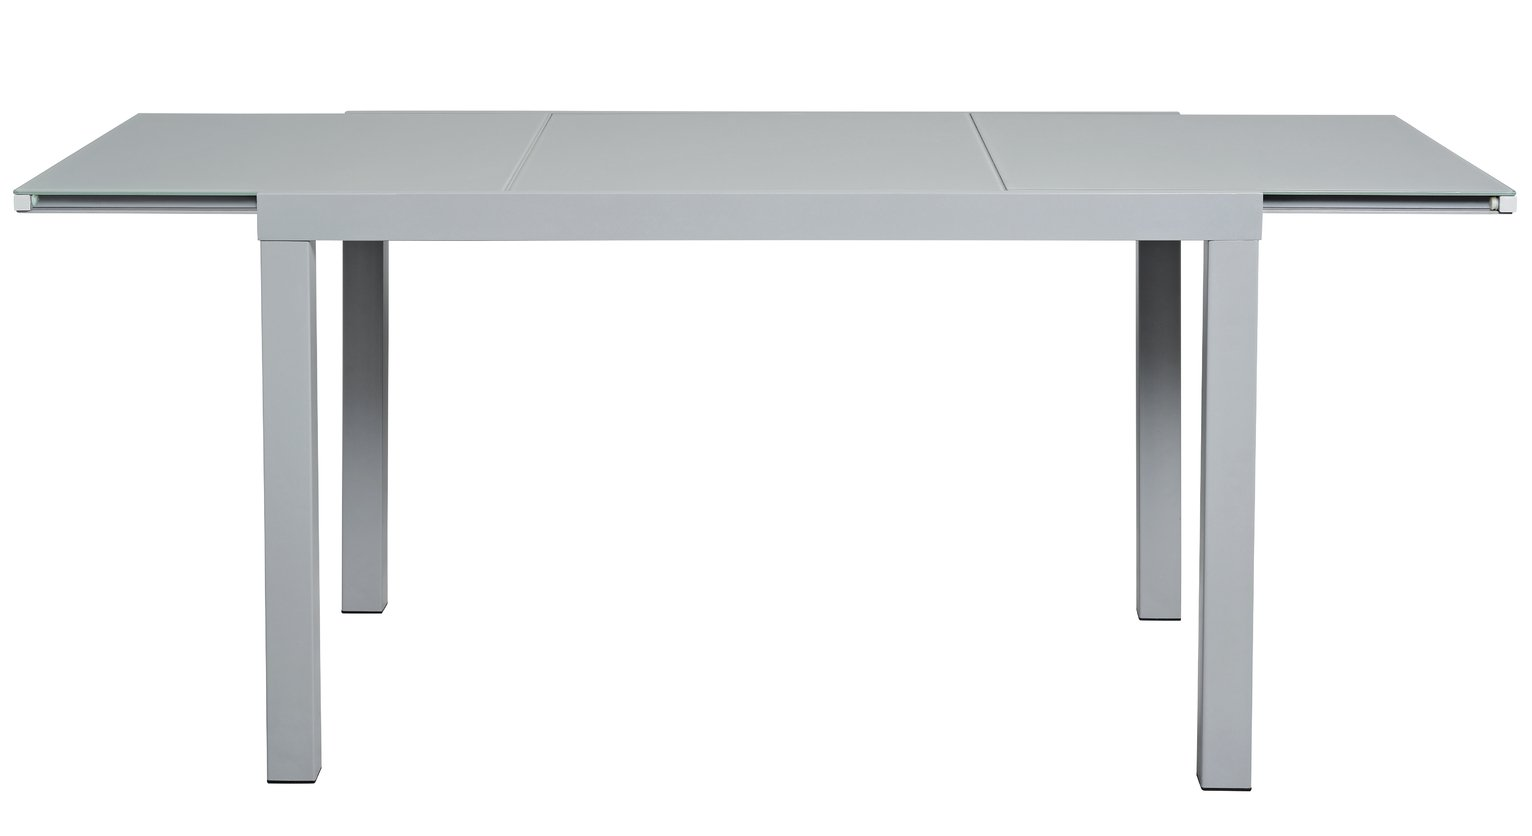 Hygena Anton Extendable Glass Table - Grey at Argos from Hygena